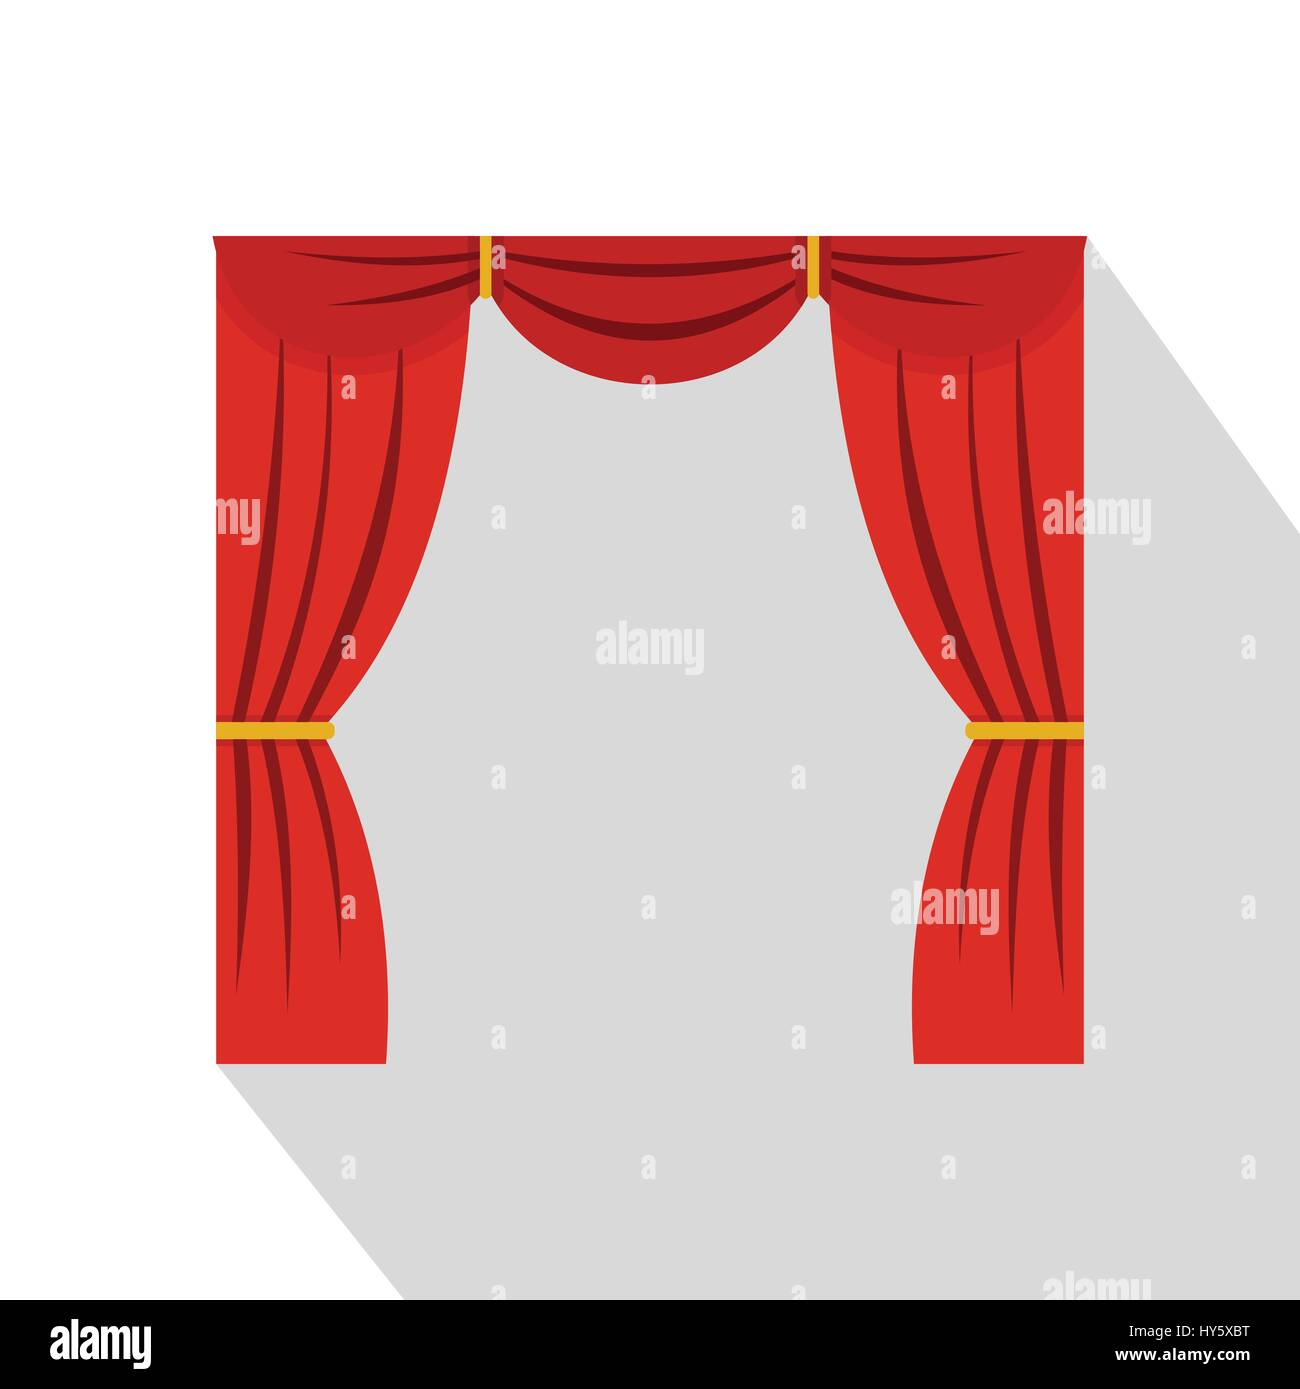 Curtain on stage icon, flat style - Stock Vector